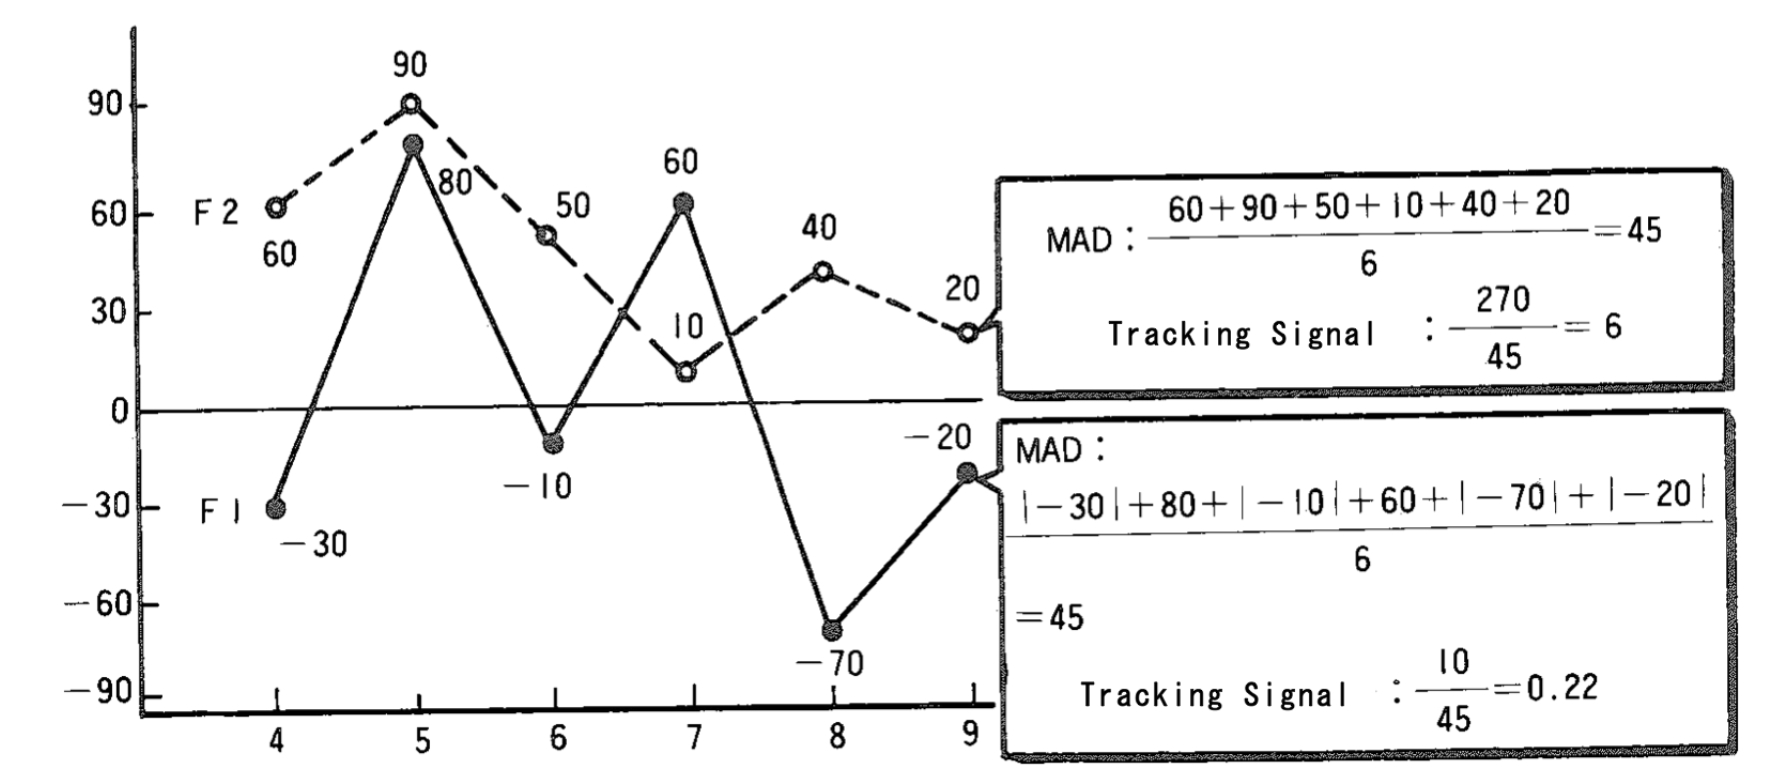 Tracking Signal Demand Forecast Mrp Glossary Of